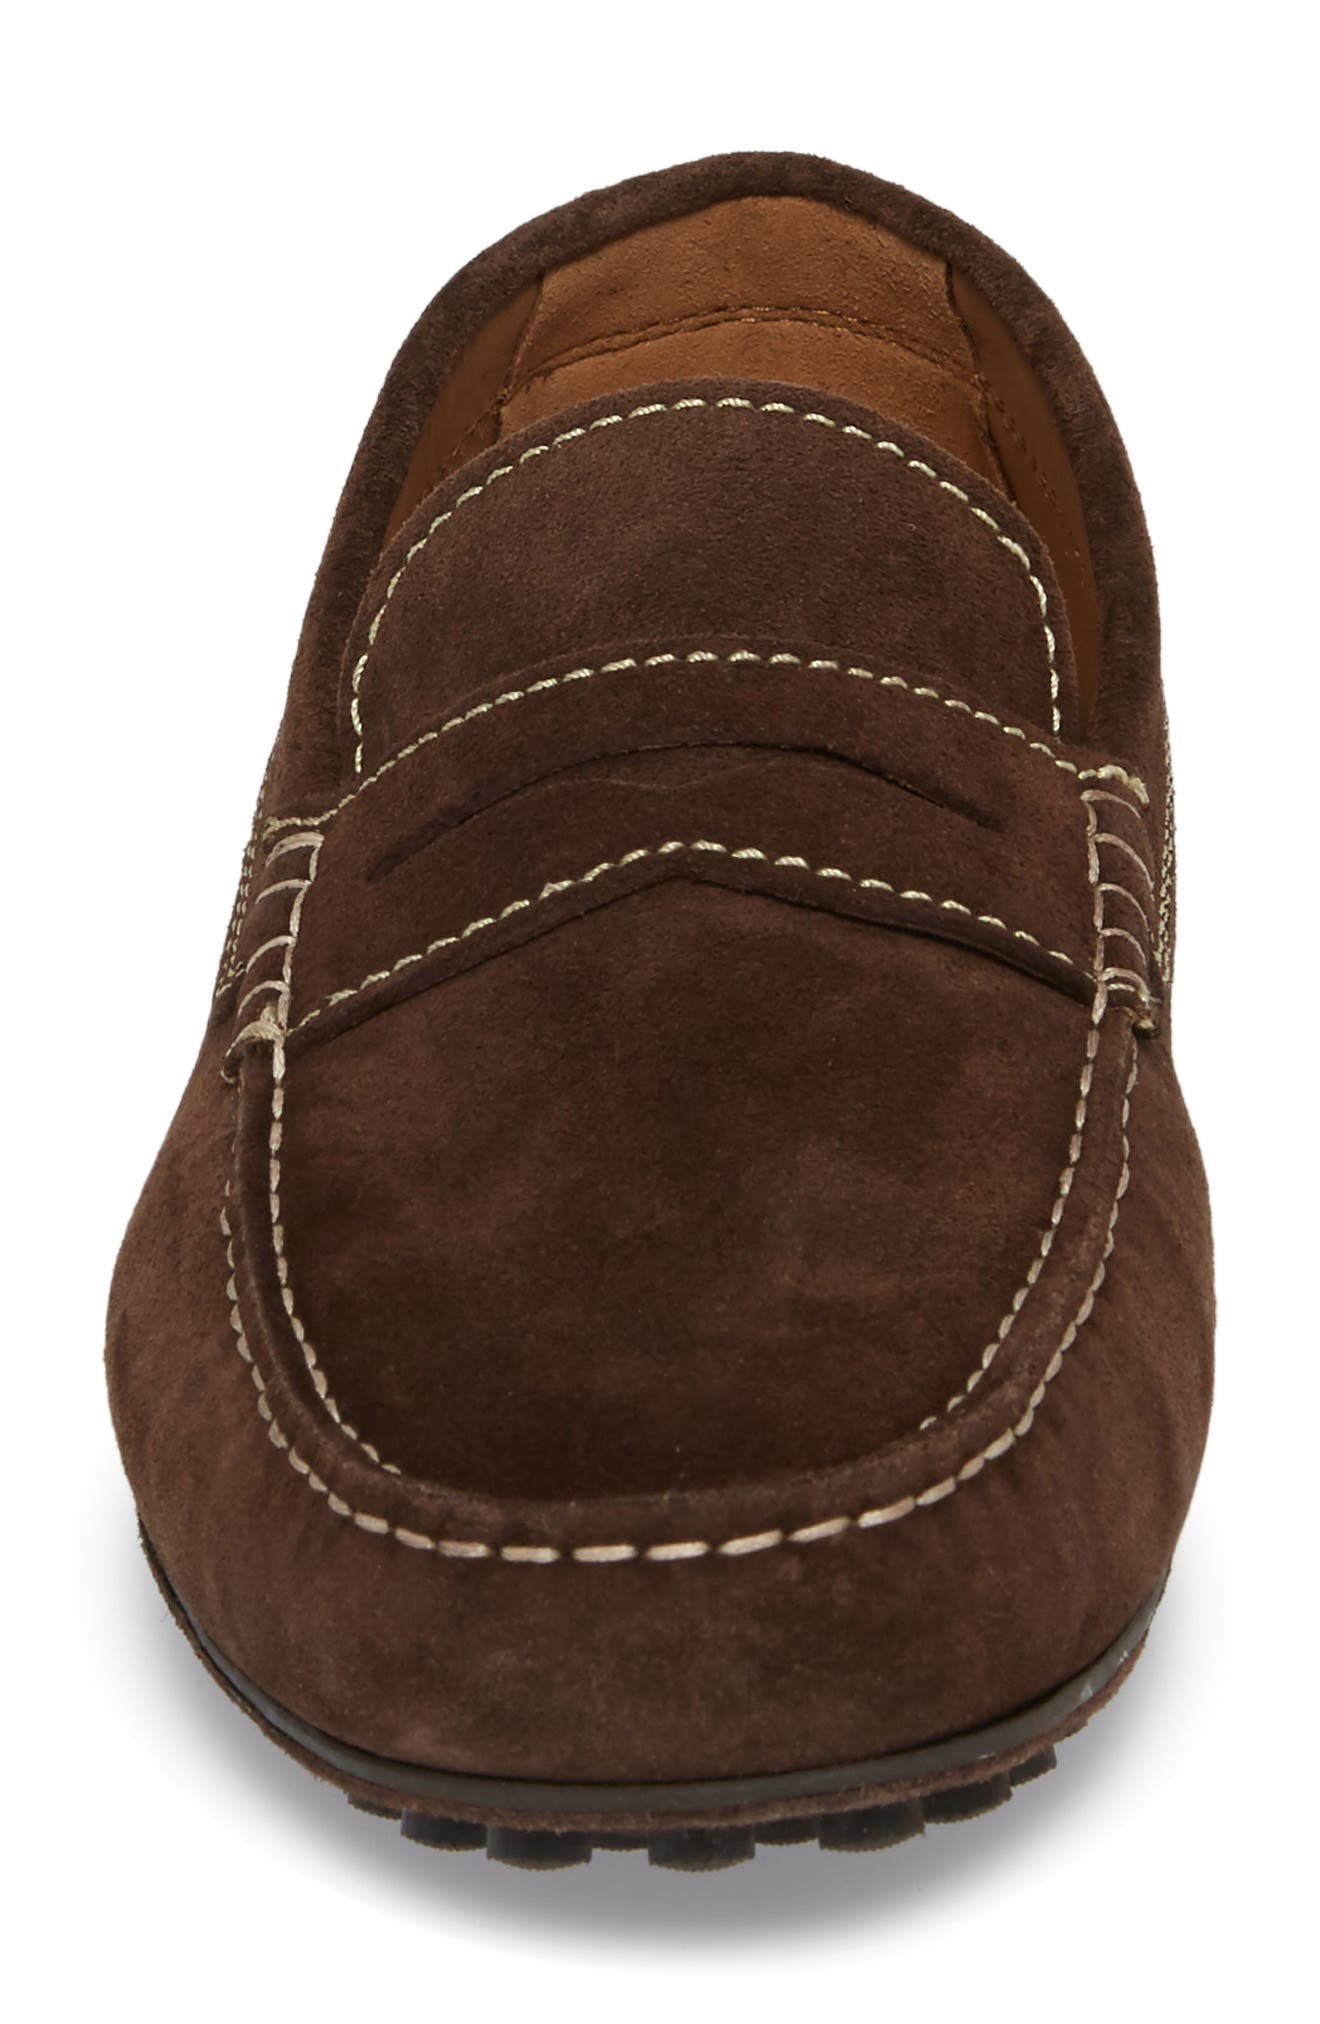 Le Mans Penny Driving Loafer,                             Alternate thumbnail 4, color,                             CHOCOLATE